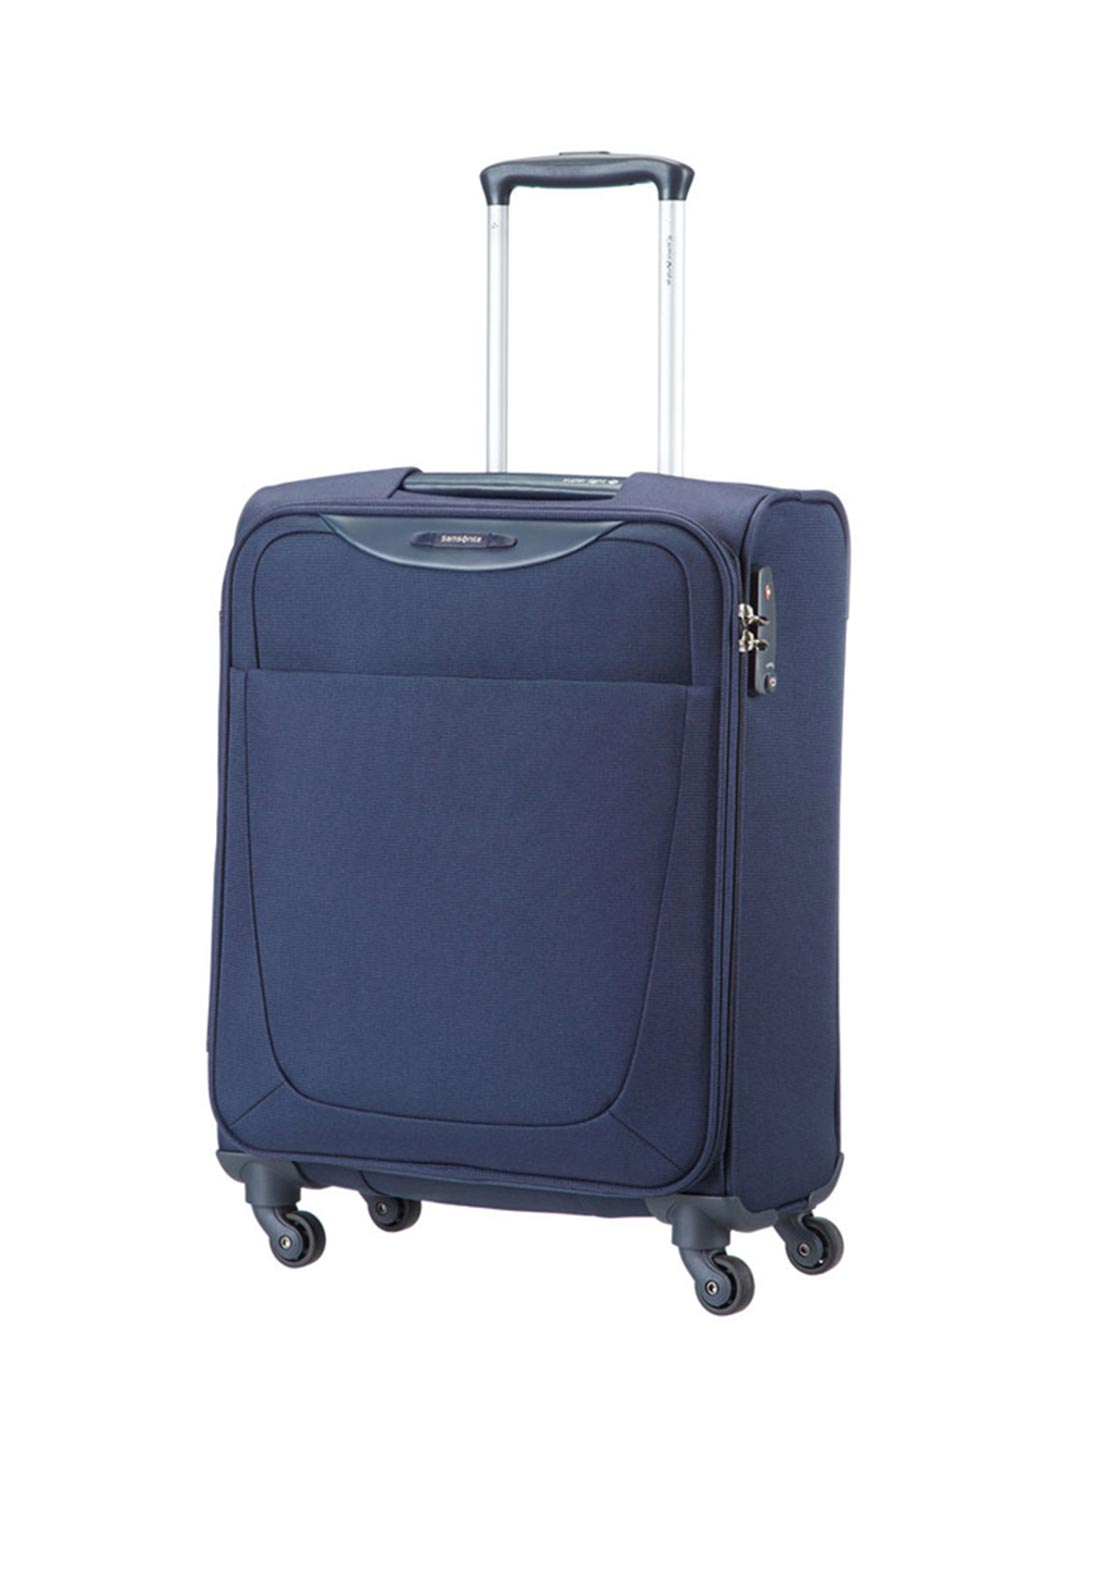 Samsonite Base Hits Spinner Cabin Size Case 55 x 40 x 20cm, Navy